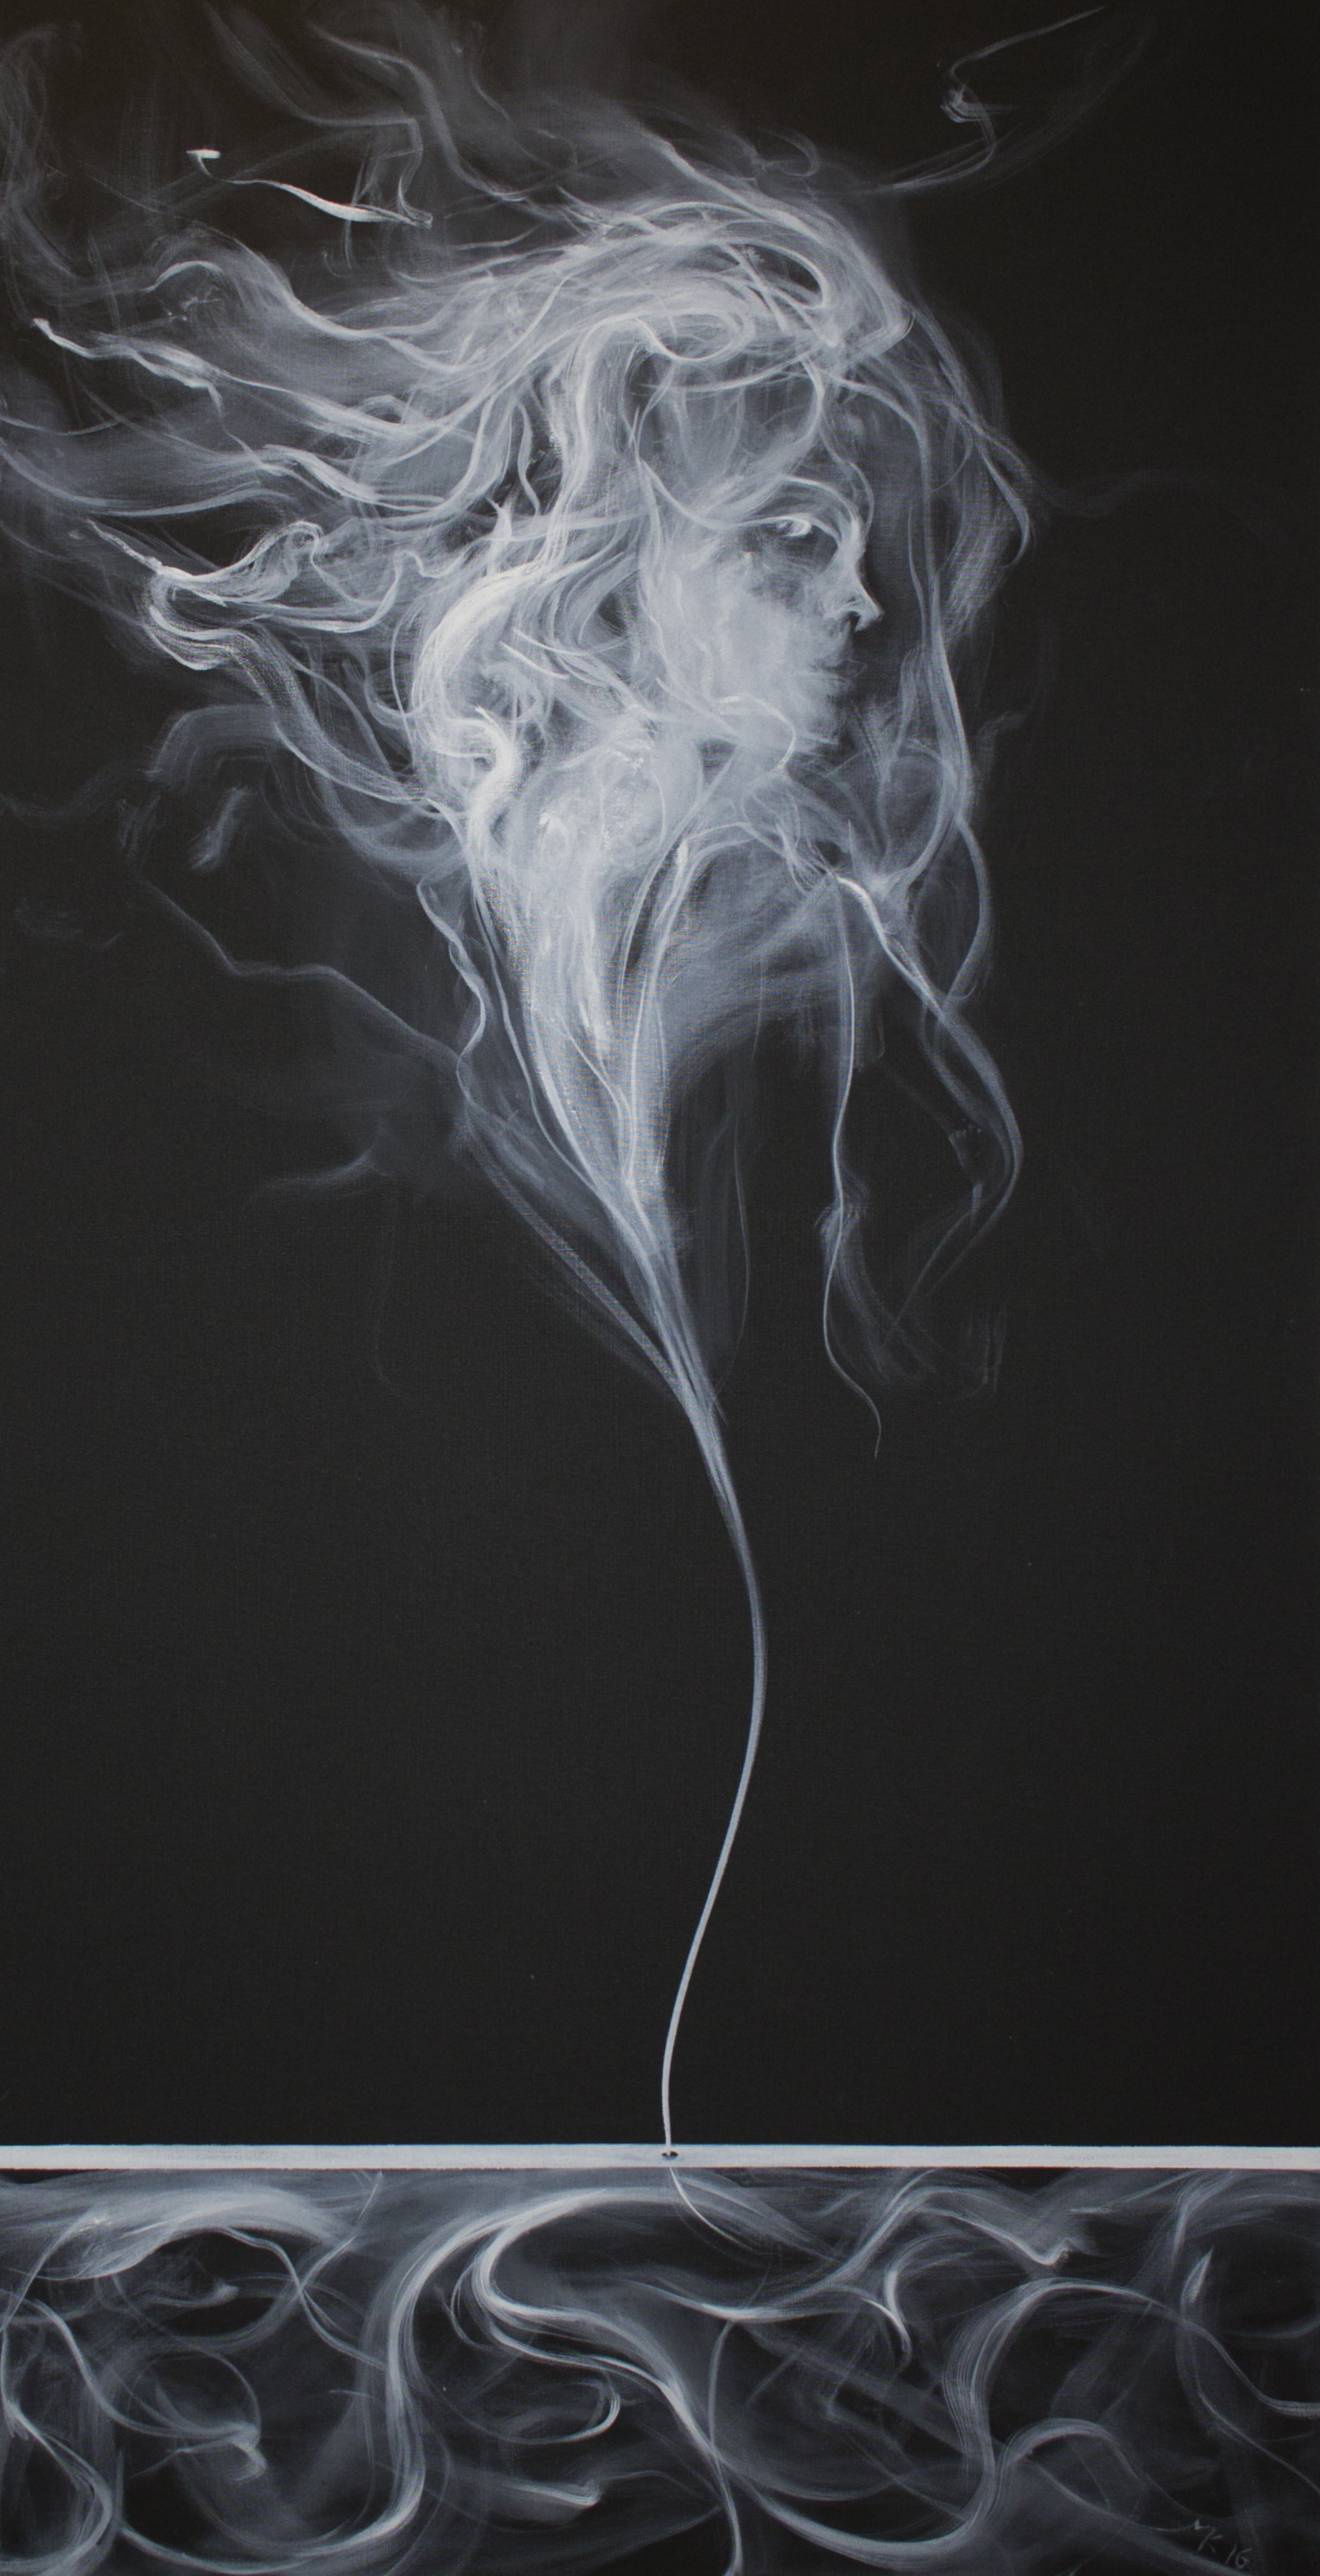 Unknown - Smoke - Mher Khachatryan